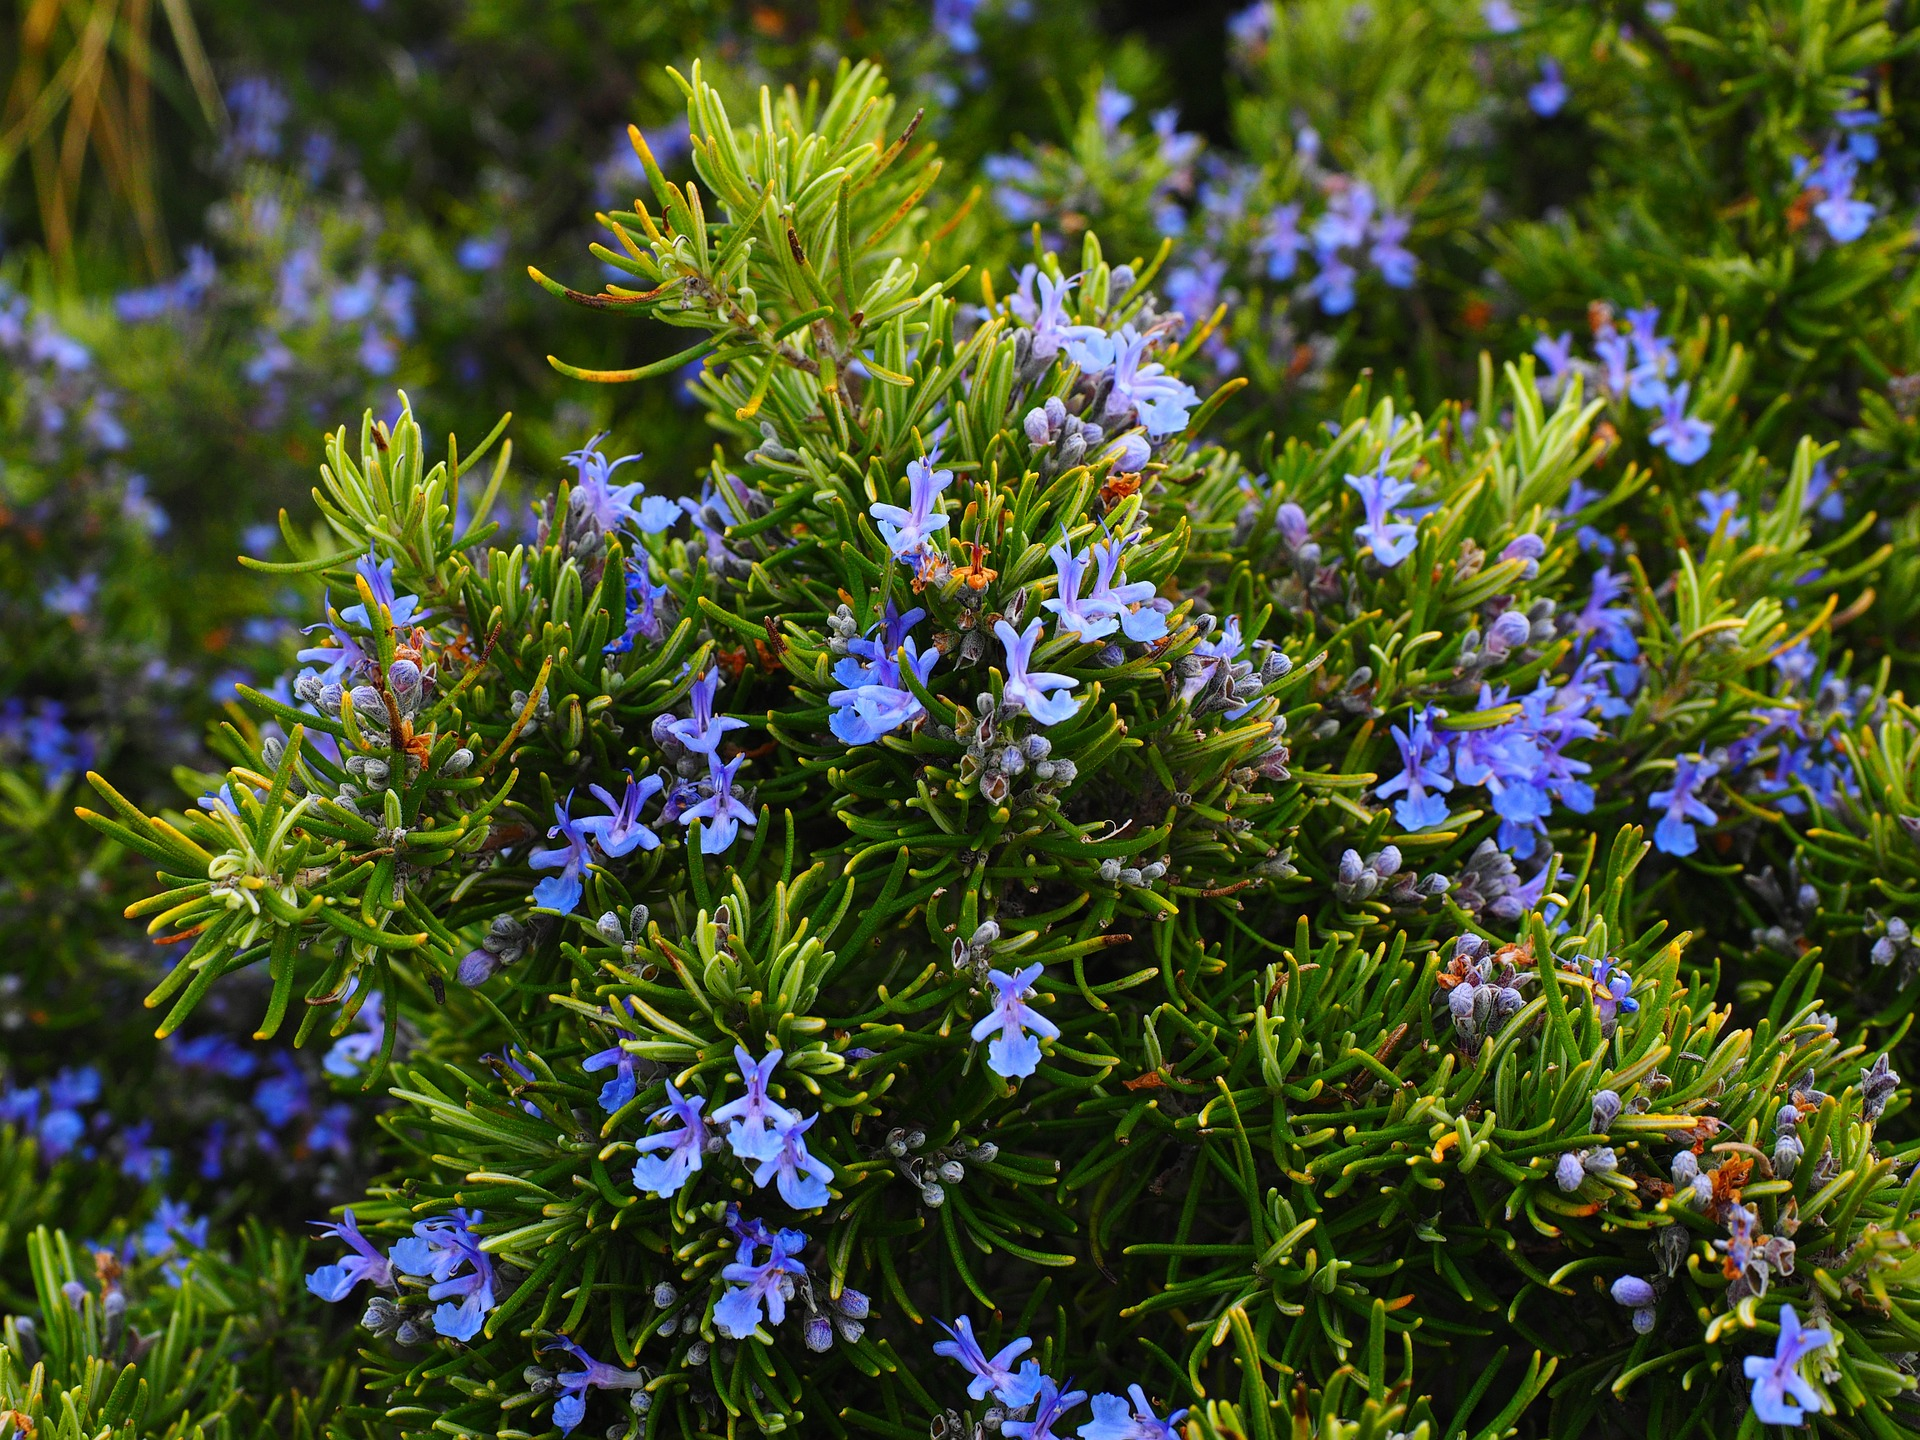 Rosemary repels mosquitoes